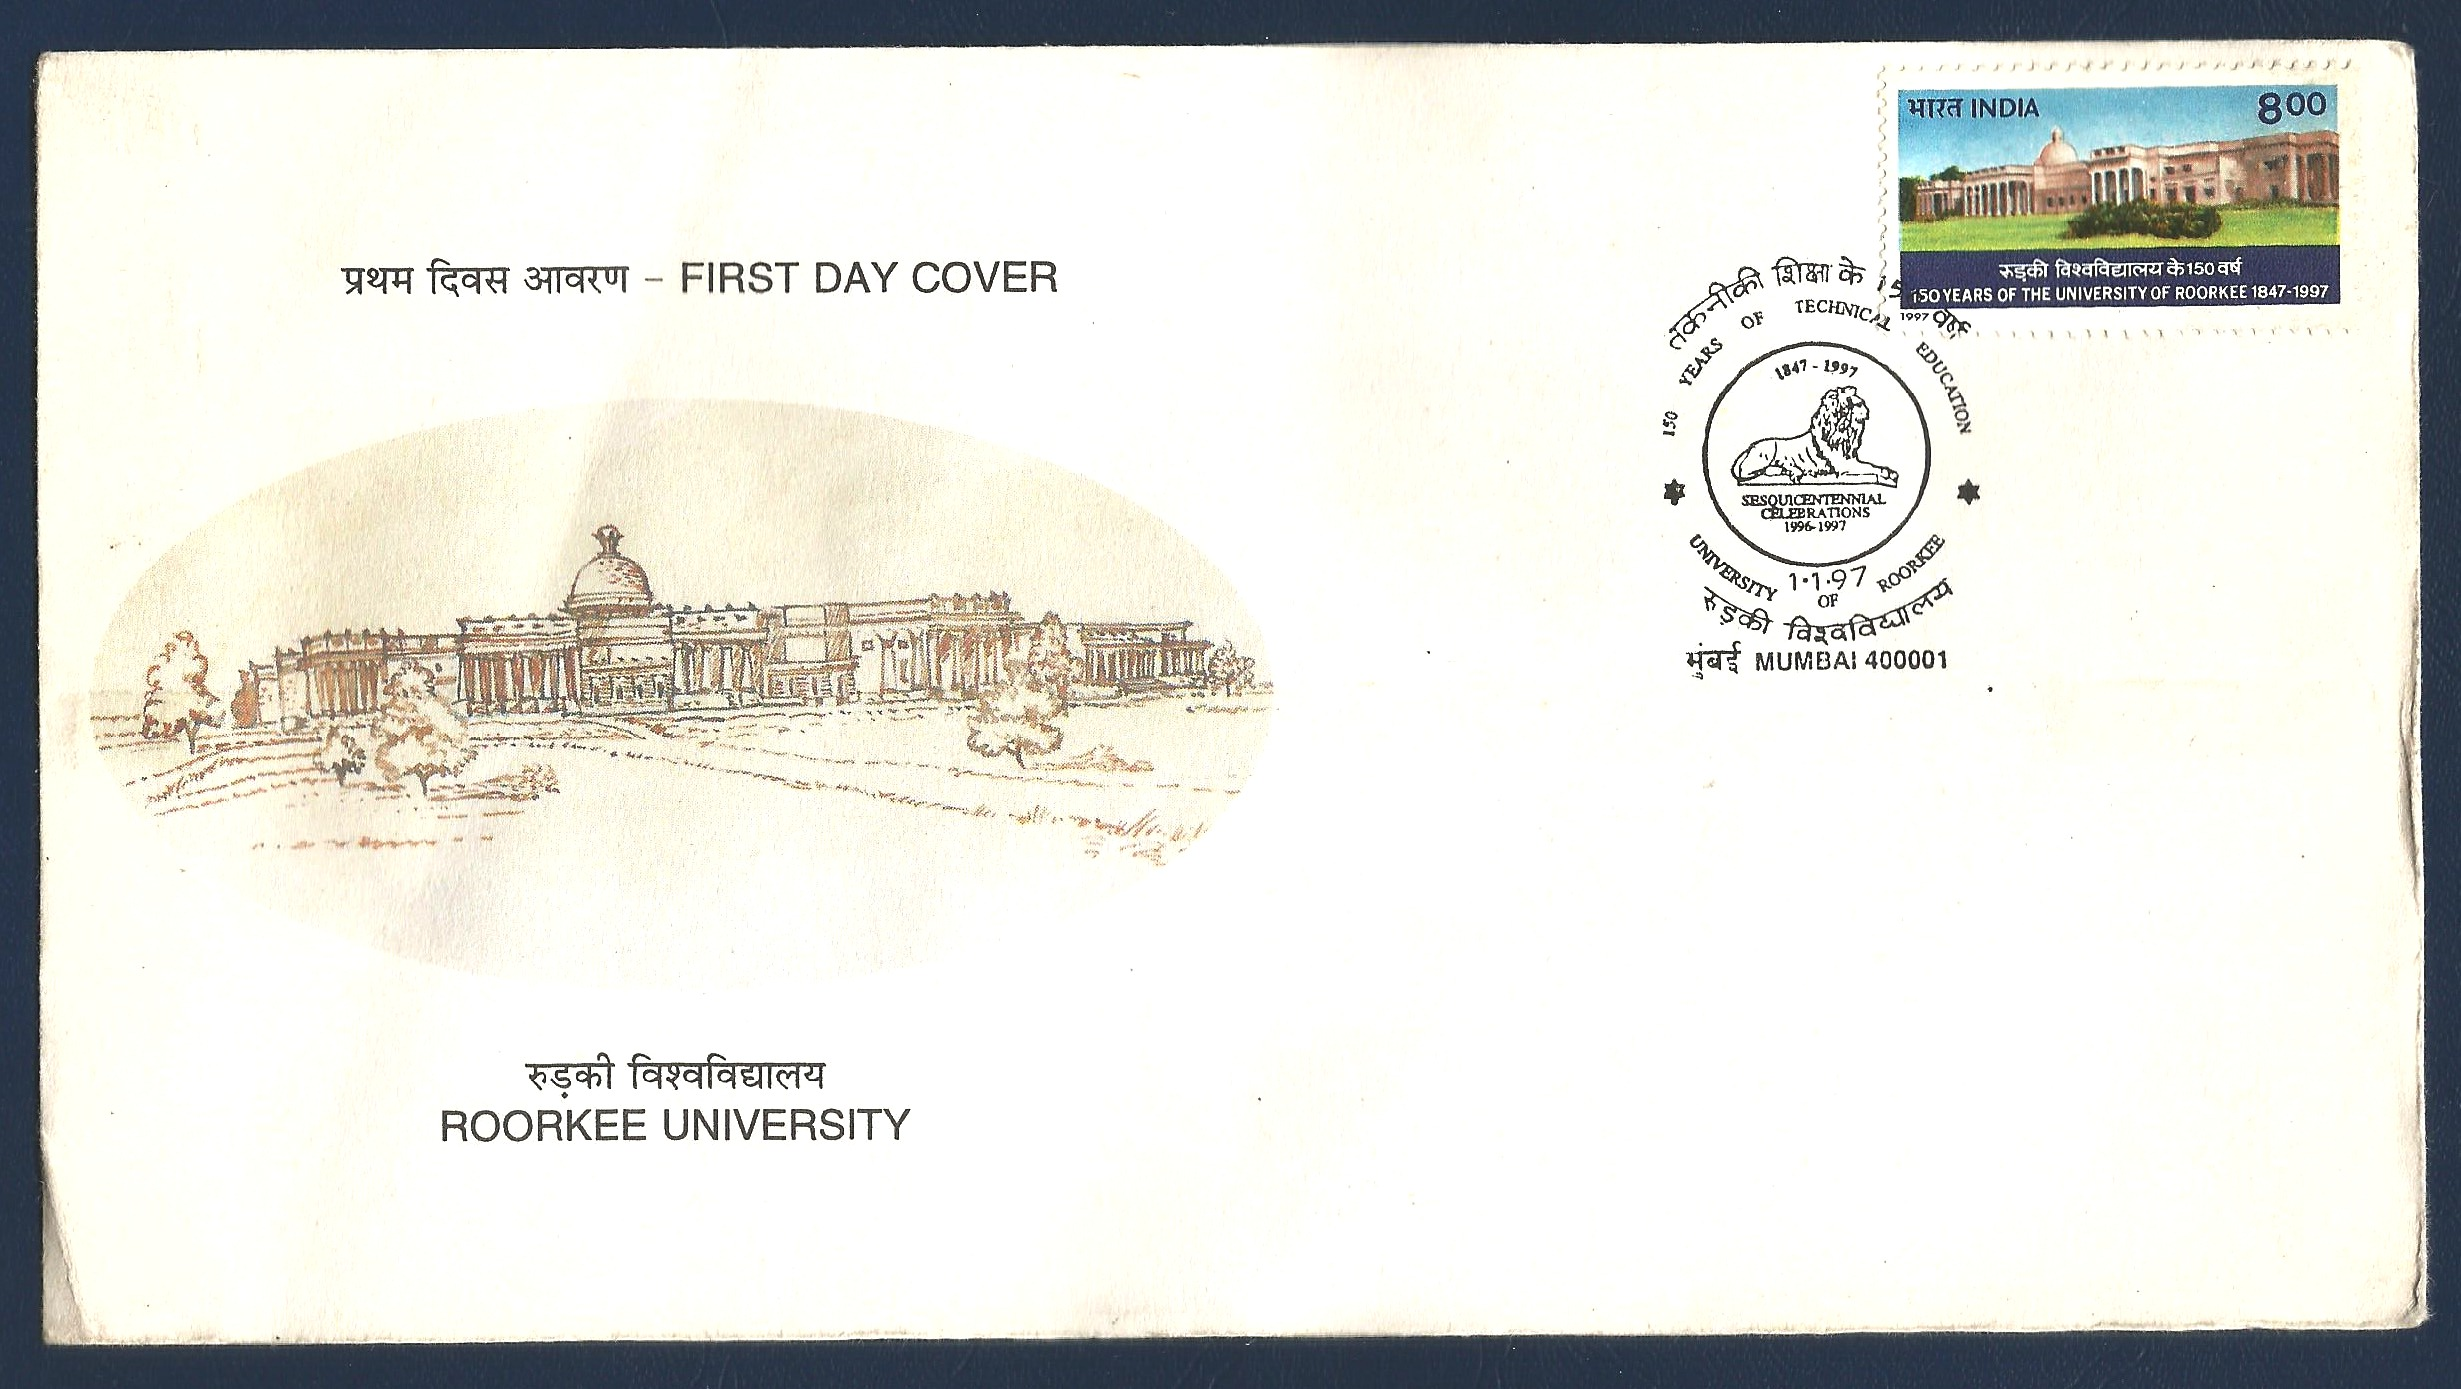 India 1997 University of Roorkee Brochure + FDC First Day Cover with Stamp @045